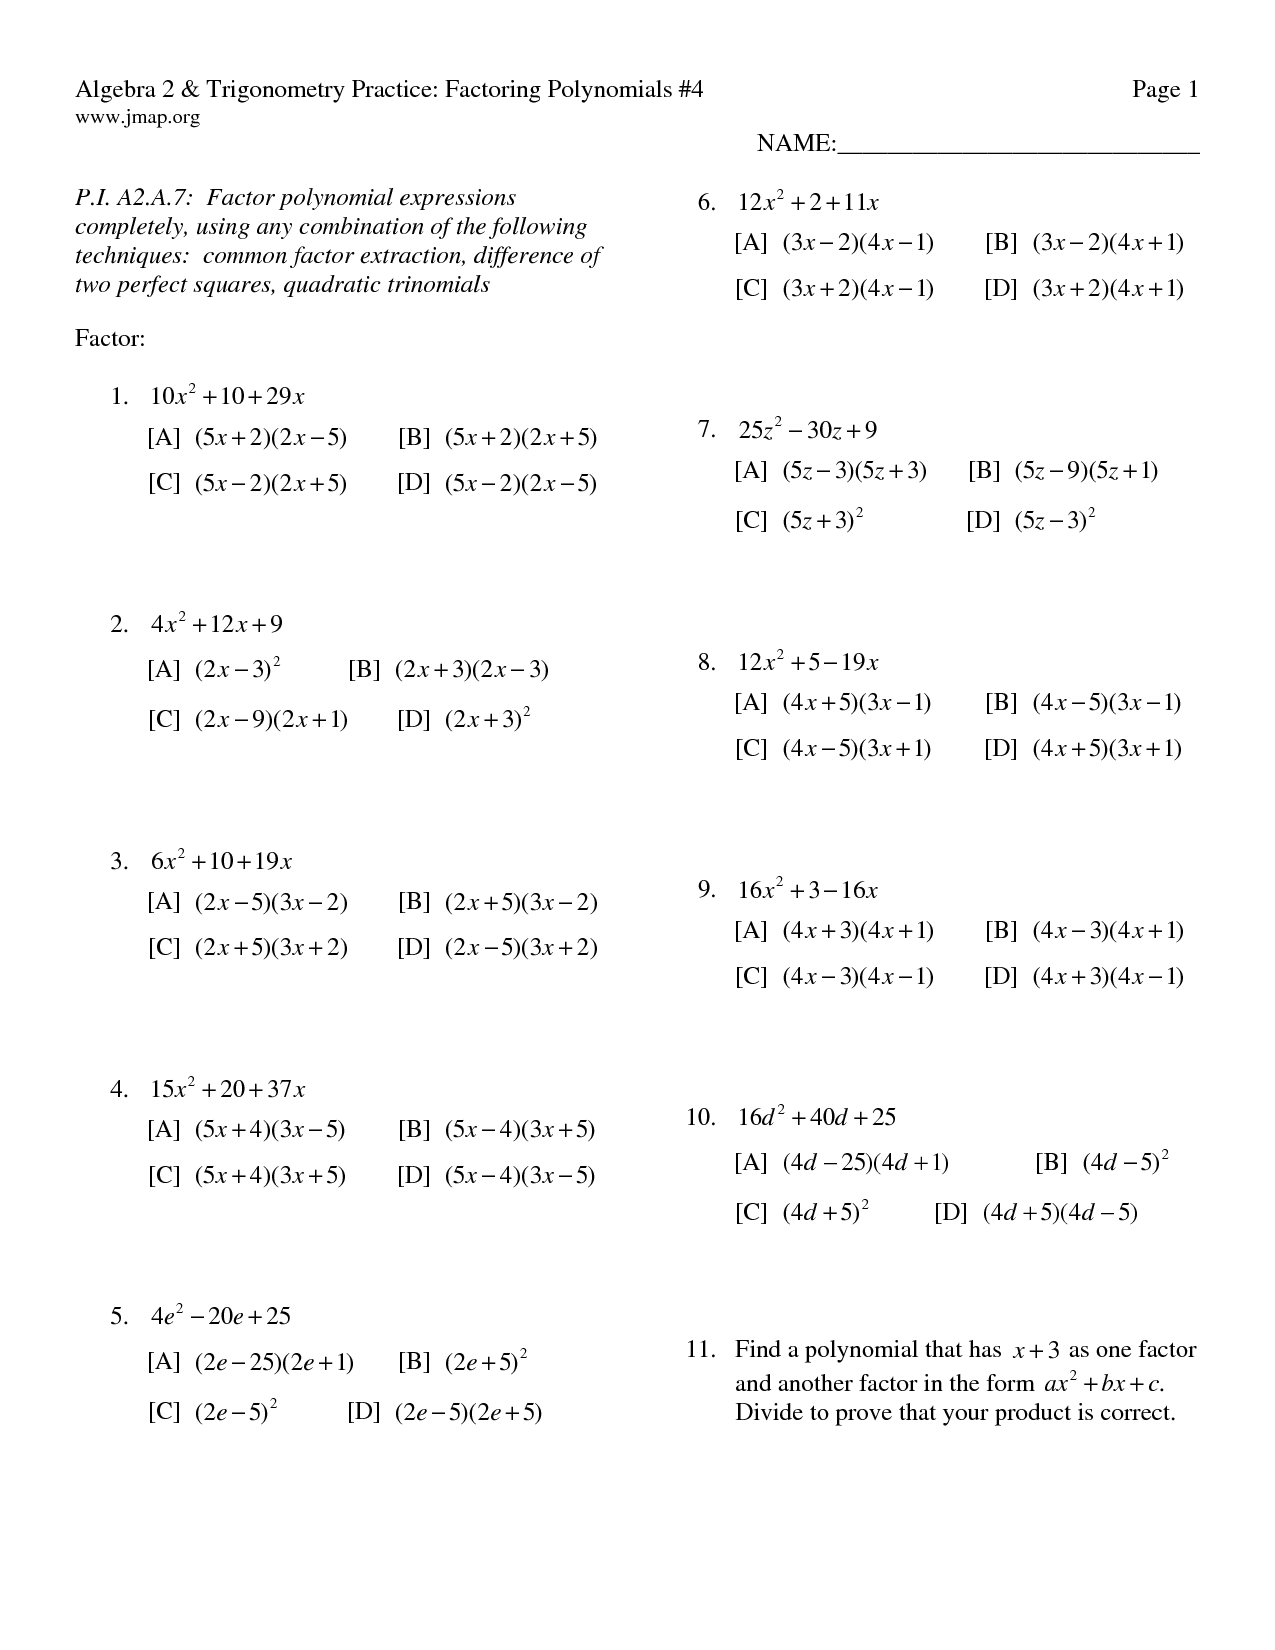 17 Best Images Of Infinite Algebra 2 Worksheets Answers